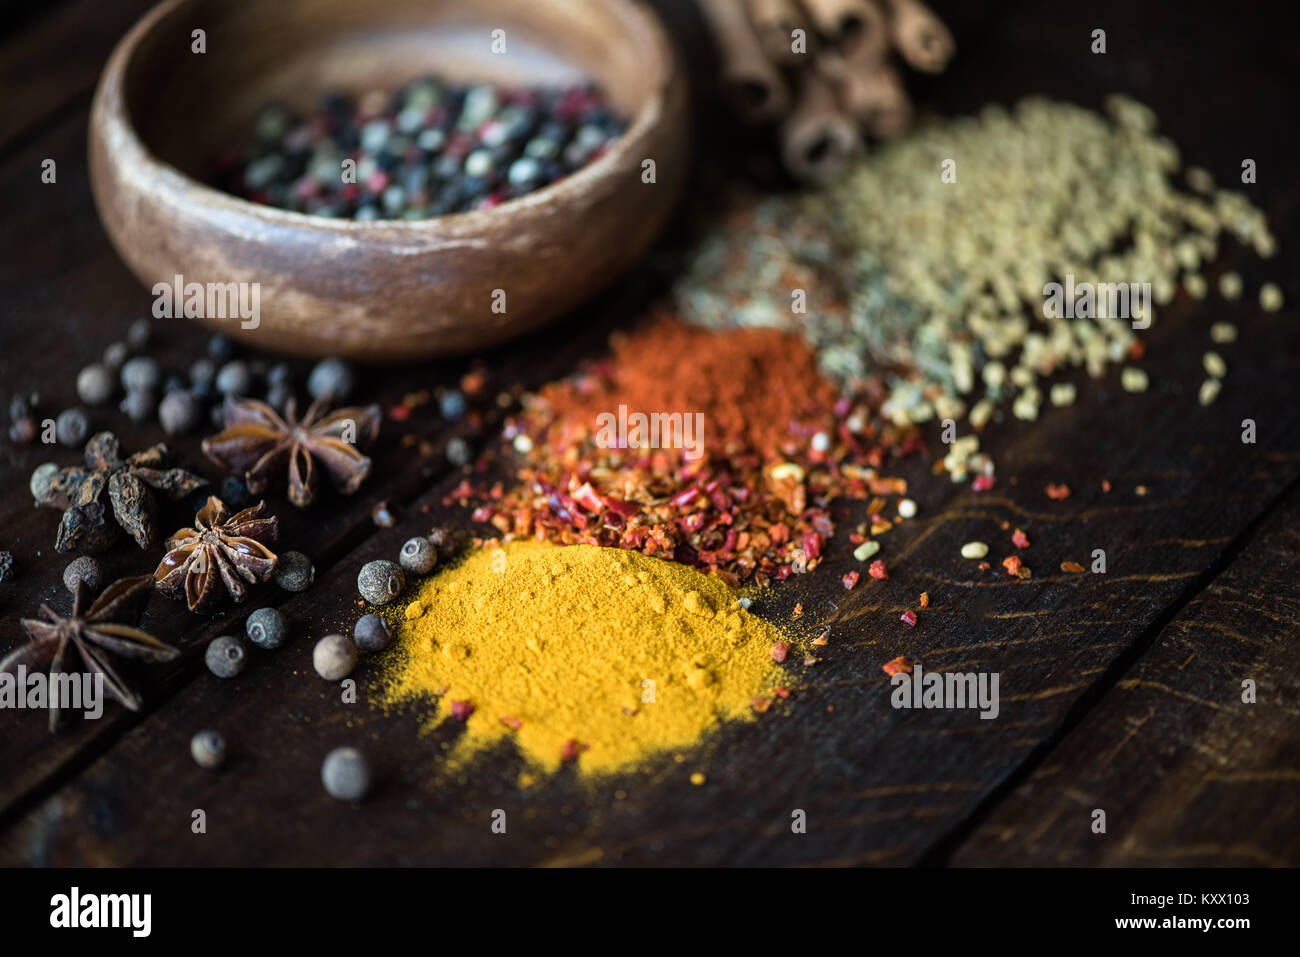 different kinds of pepper in bowl and spices with herbs scattered on wooden tabletop - Stock Image